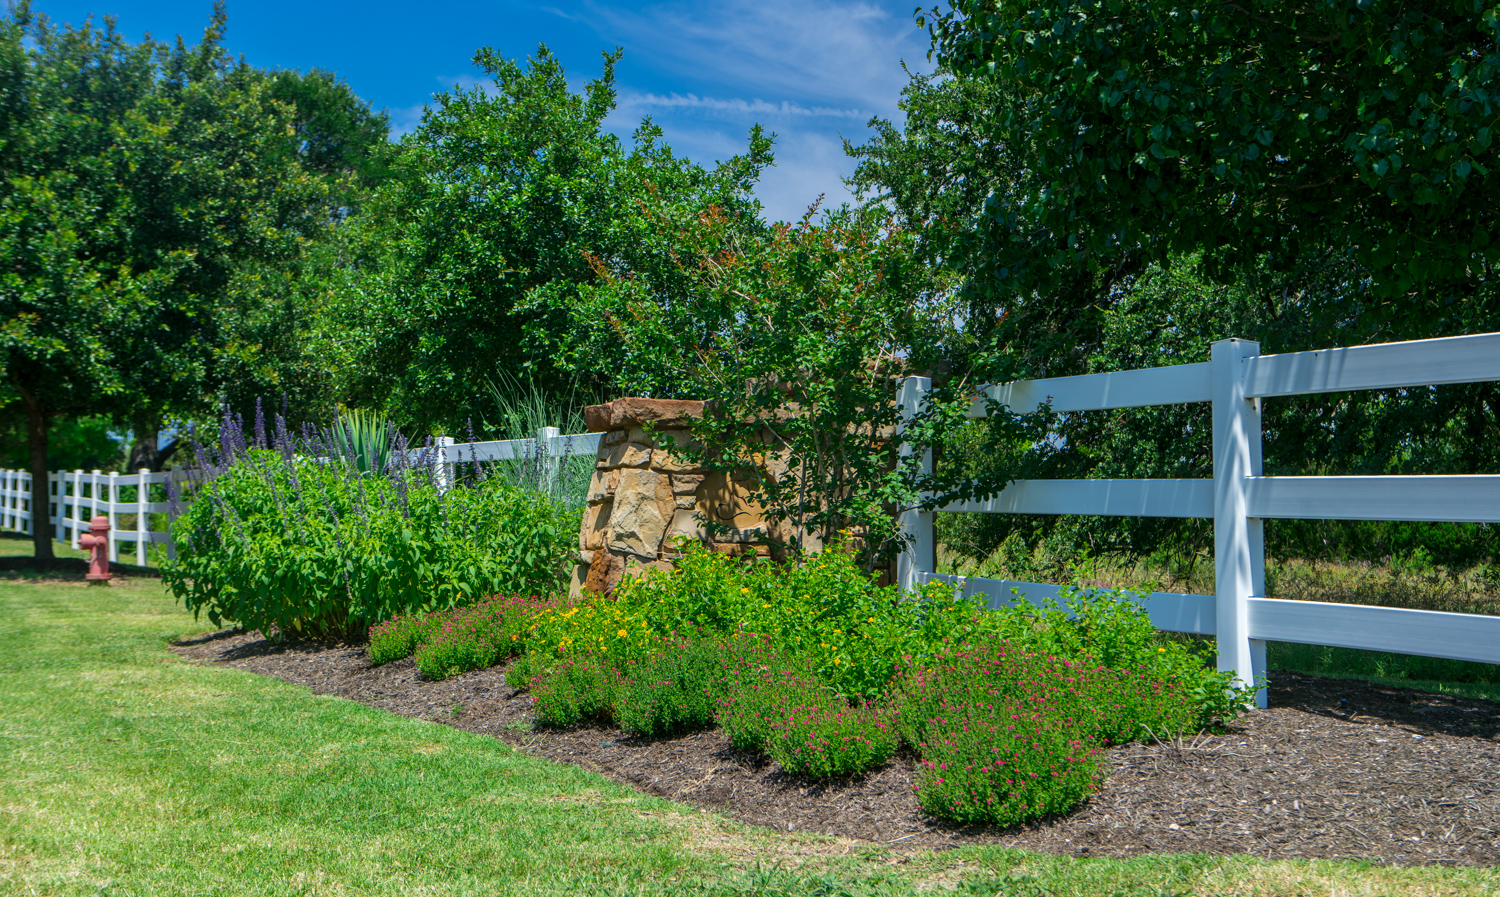 Commercial landscape plant bed with mulch